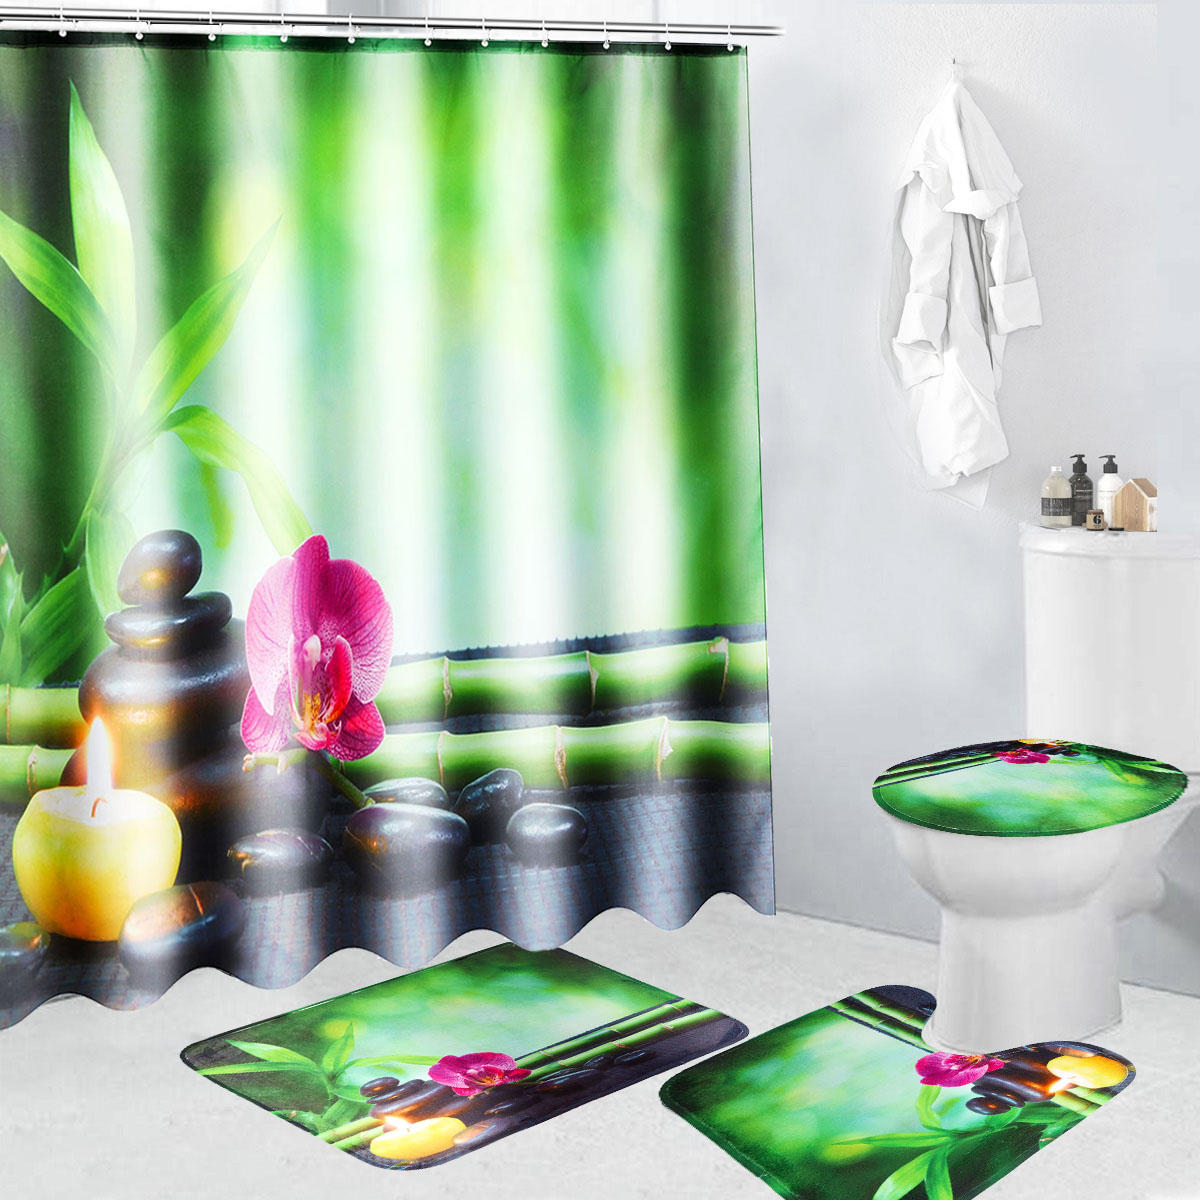 4Pcs 180x180cm Bamboo Pebbles Bathroom Shower Curtain With Hooks Toliet Cover Mat COD